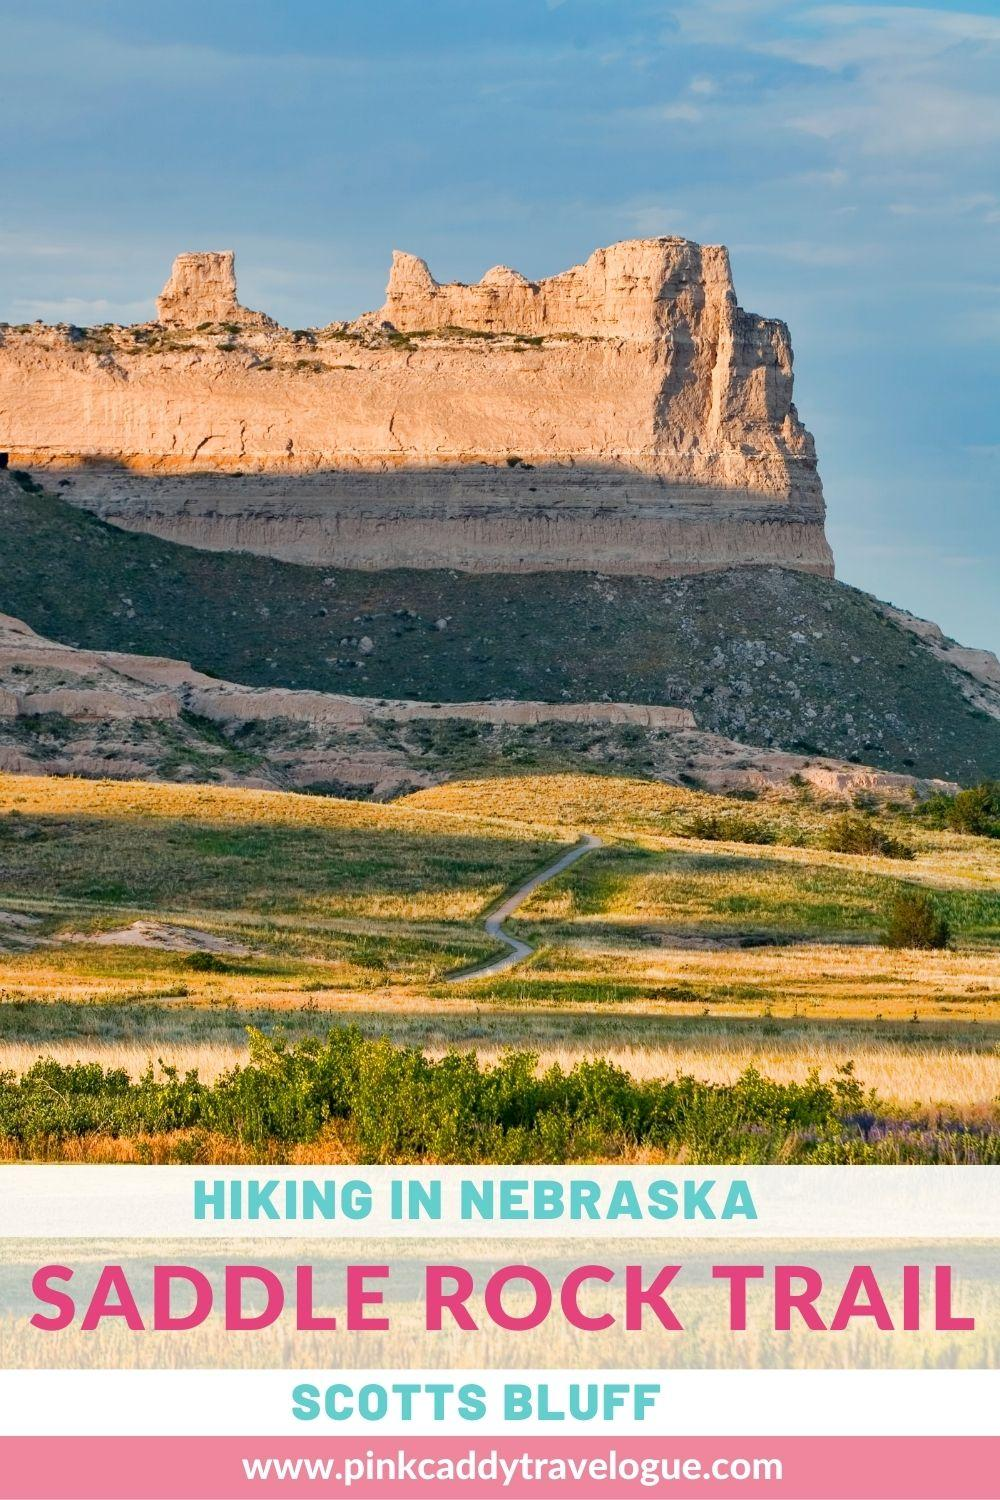 Yes, you CAN go hiking in Nebraska! Located in Scotts Bluff National Monument, the Saddle Rock Trail offers great views, a cool rock tunnel, and is just hard enough to be considered a hike but easy enough for most people to be able to do. Check out the article for all the info you need! #nebraska #scottsbluff #hiking #usatravel